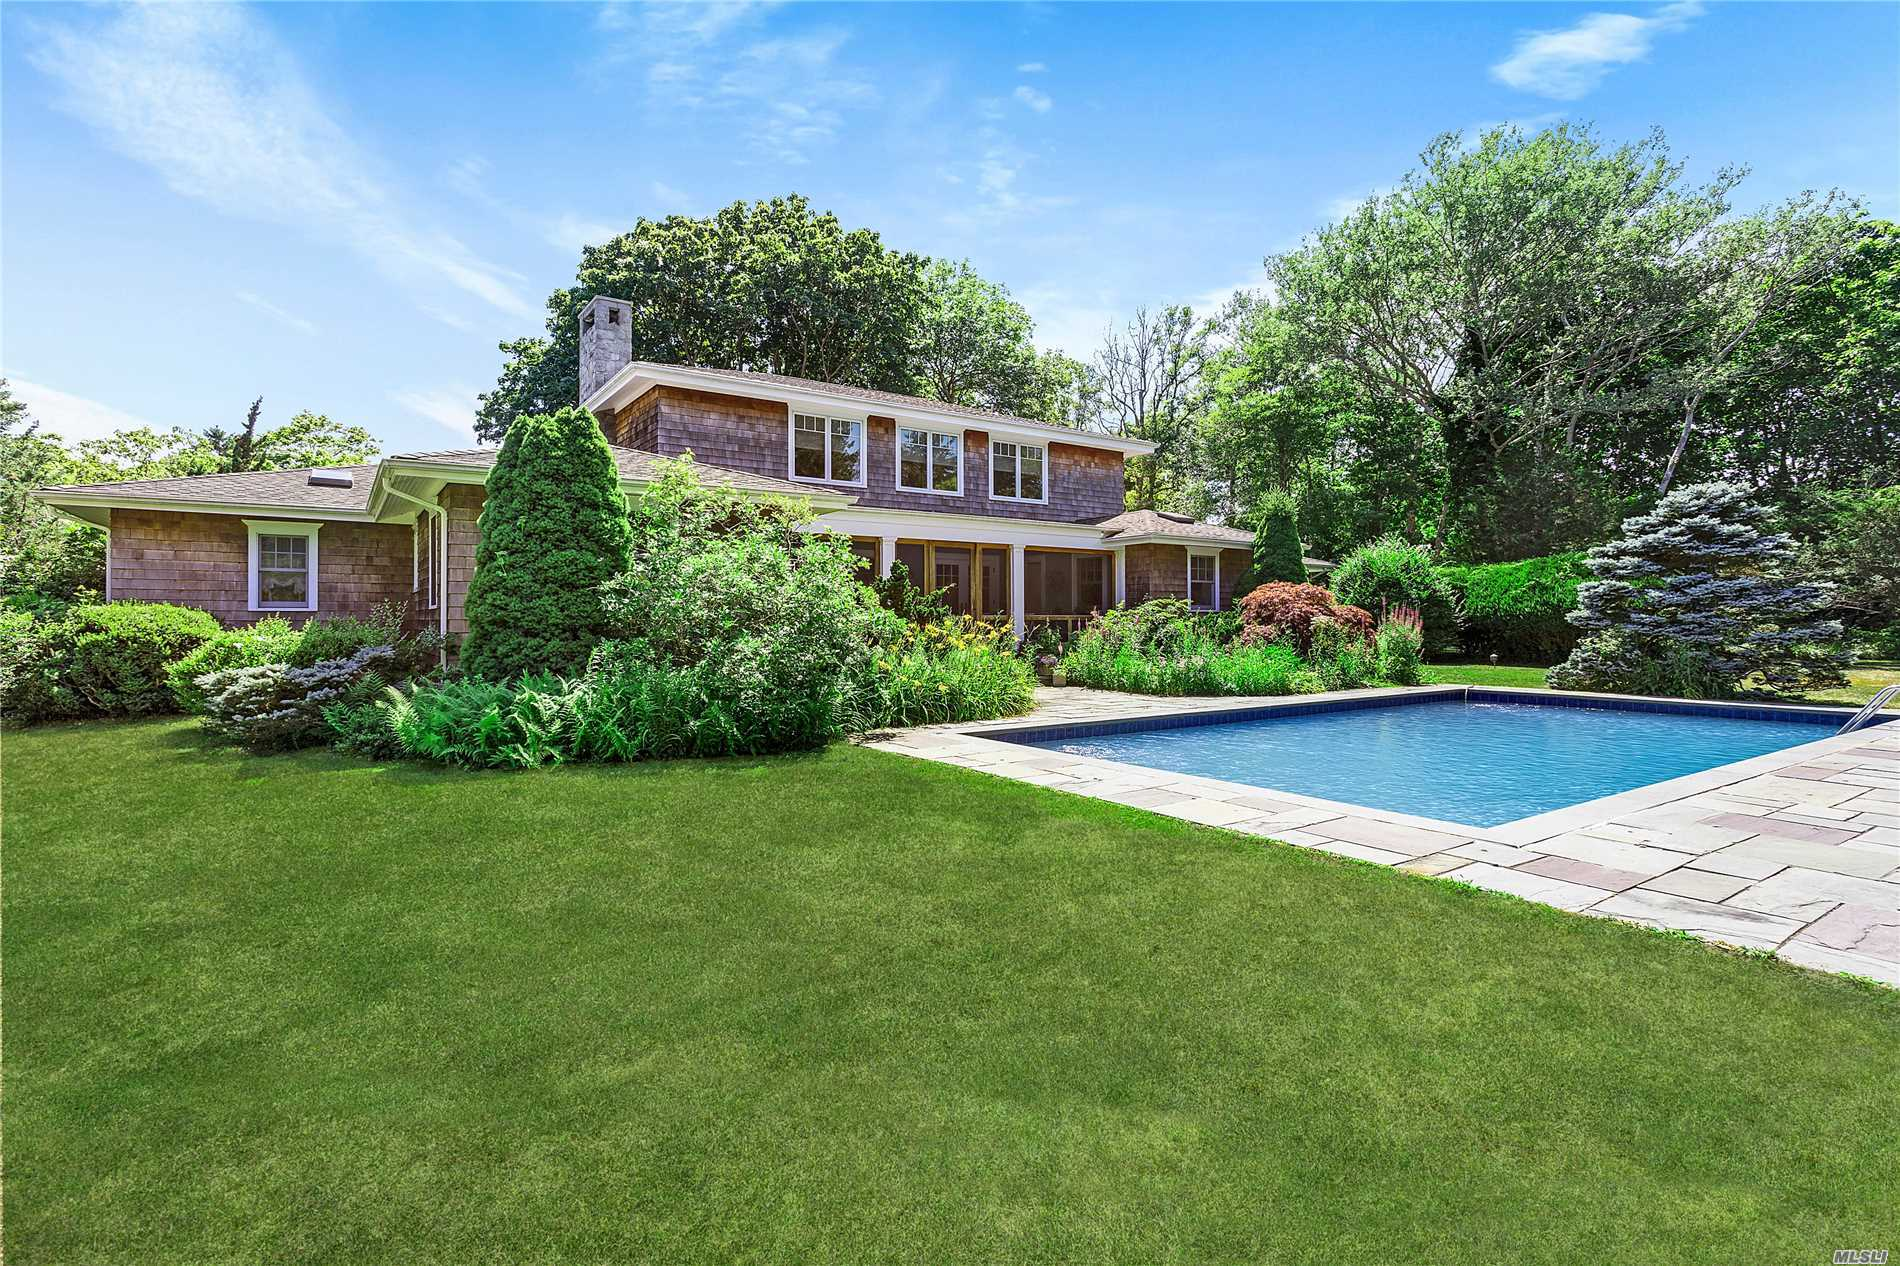 This Five Bedroom Traditional Is Sited On 1.6 Acres Of Lawn With Beautiful Gardens And Offers Privacy In The Estate Section Of Quogue Village. An Inviting Foyers Leads To A Spacious Living Room With A Charming Fireplace. A Formal Dining Room And Eat-In-Kitchen Open To A Screened Porch. The First Floor Offers Four Bedrooms And 2.5 Baths. The Second Floor Master Suite Has Its Own Sitting Area With An Additional Tv Room Or Office. A Beautiful Heated Gunite Pool Completes The Landscape.